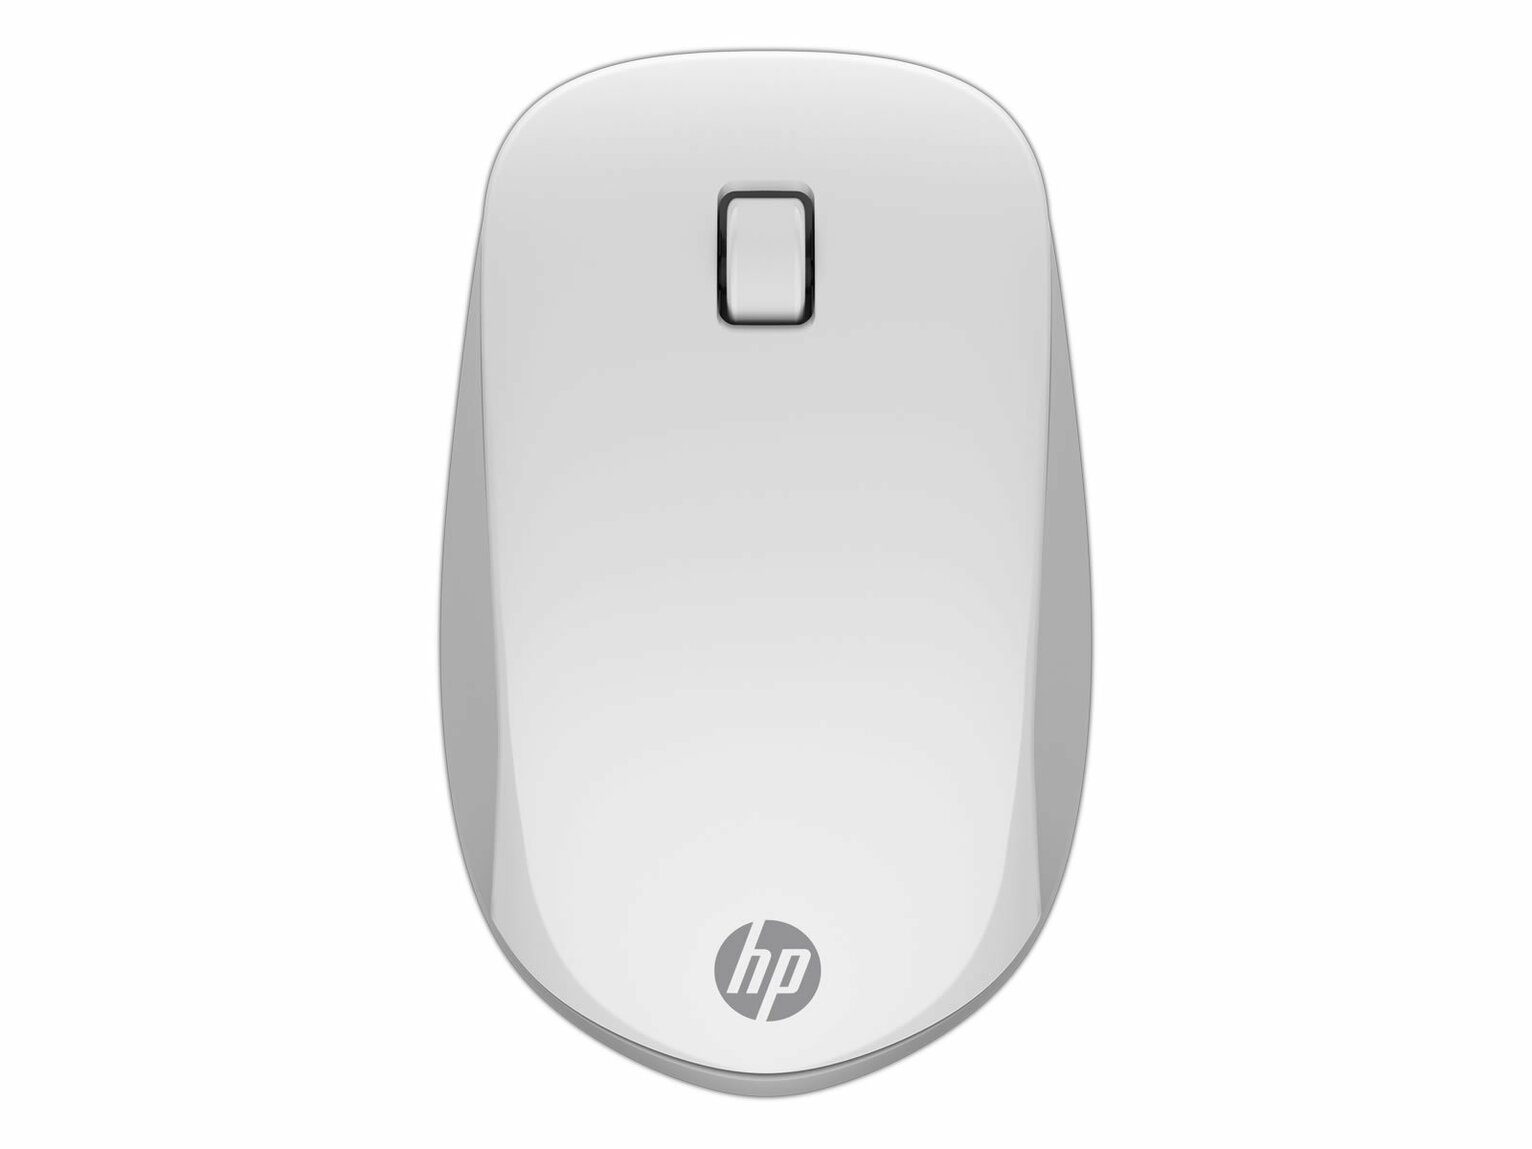 HP Z5000 Wireless Mouse - White & Silver